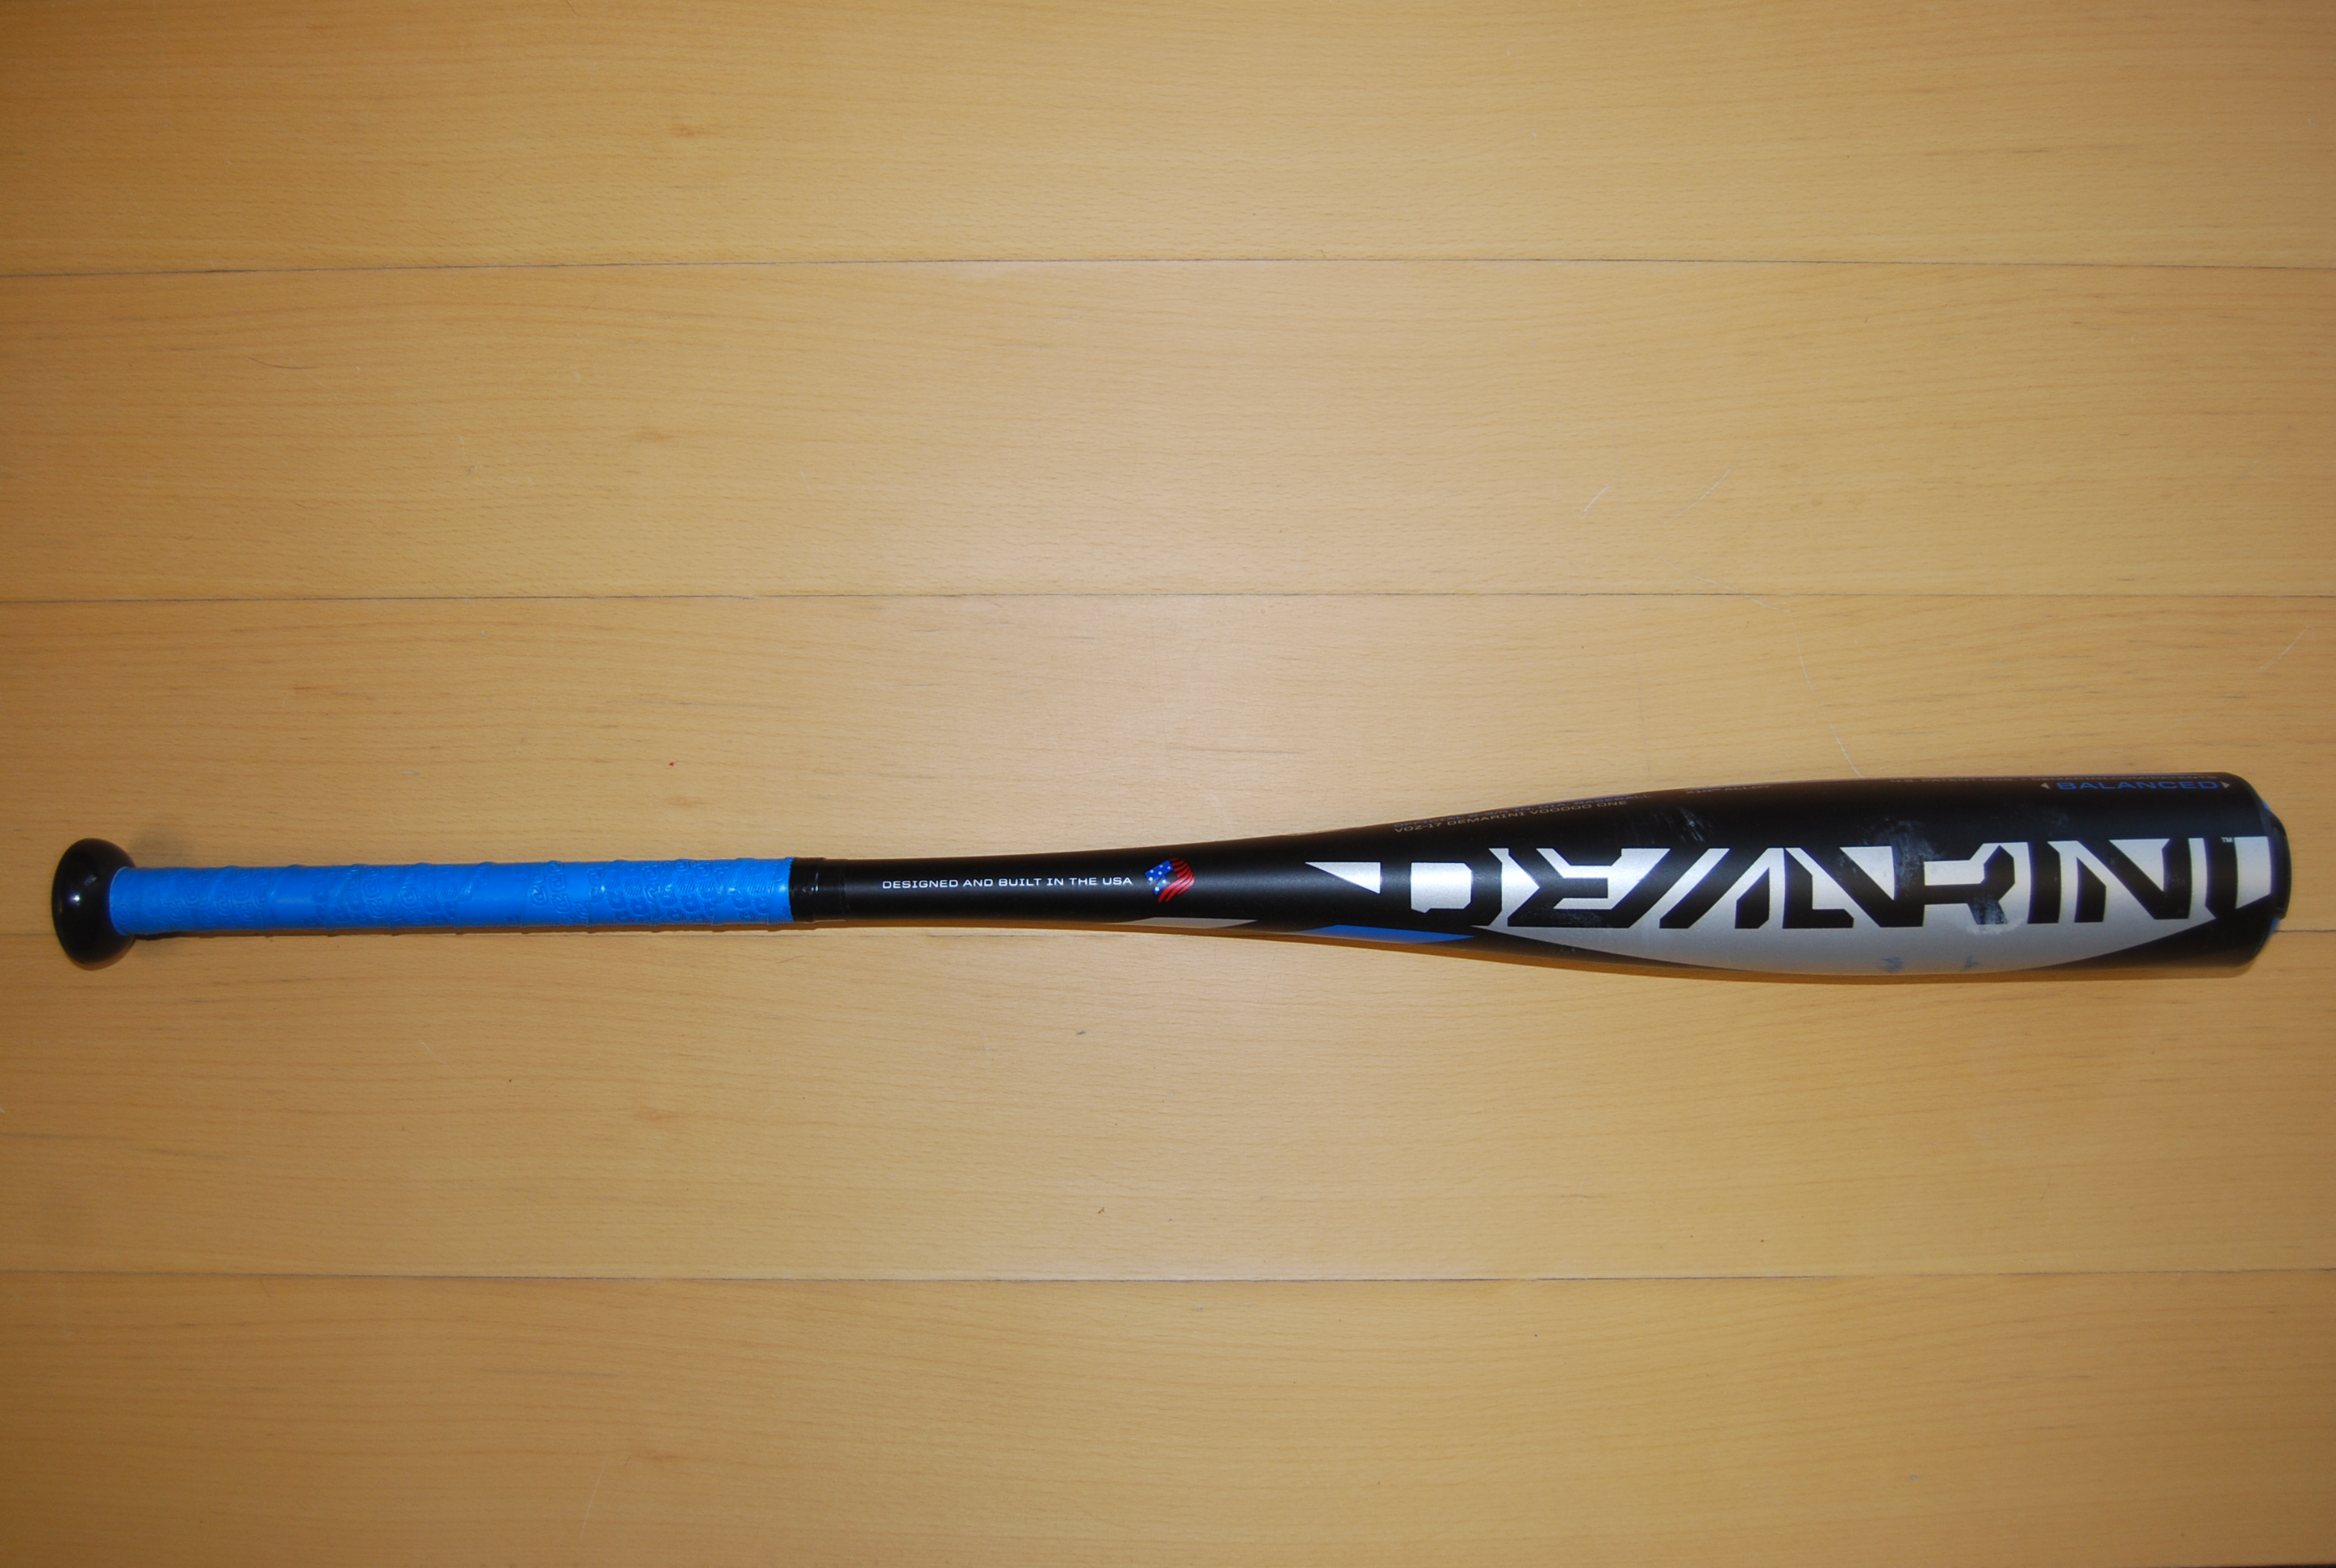 Details about GRS-9 USED DEMARINI 31 21 Voodoo One 2 3 4 Big Barrel  Baseball Bat Warranty 869a40b5b1